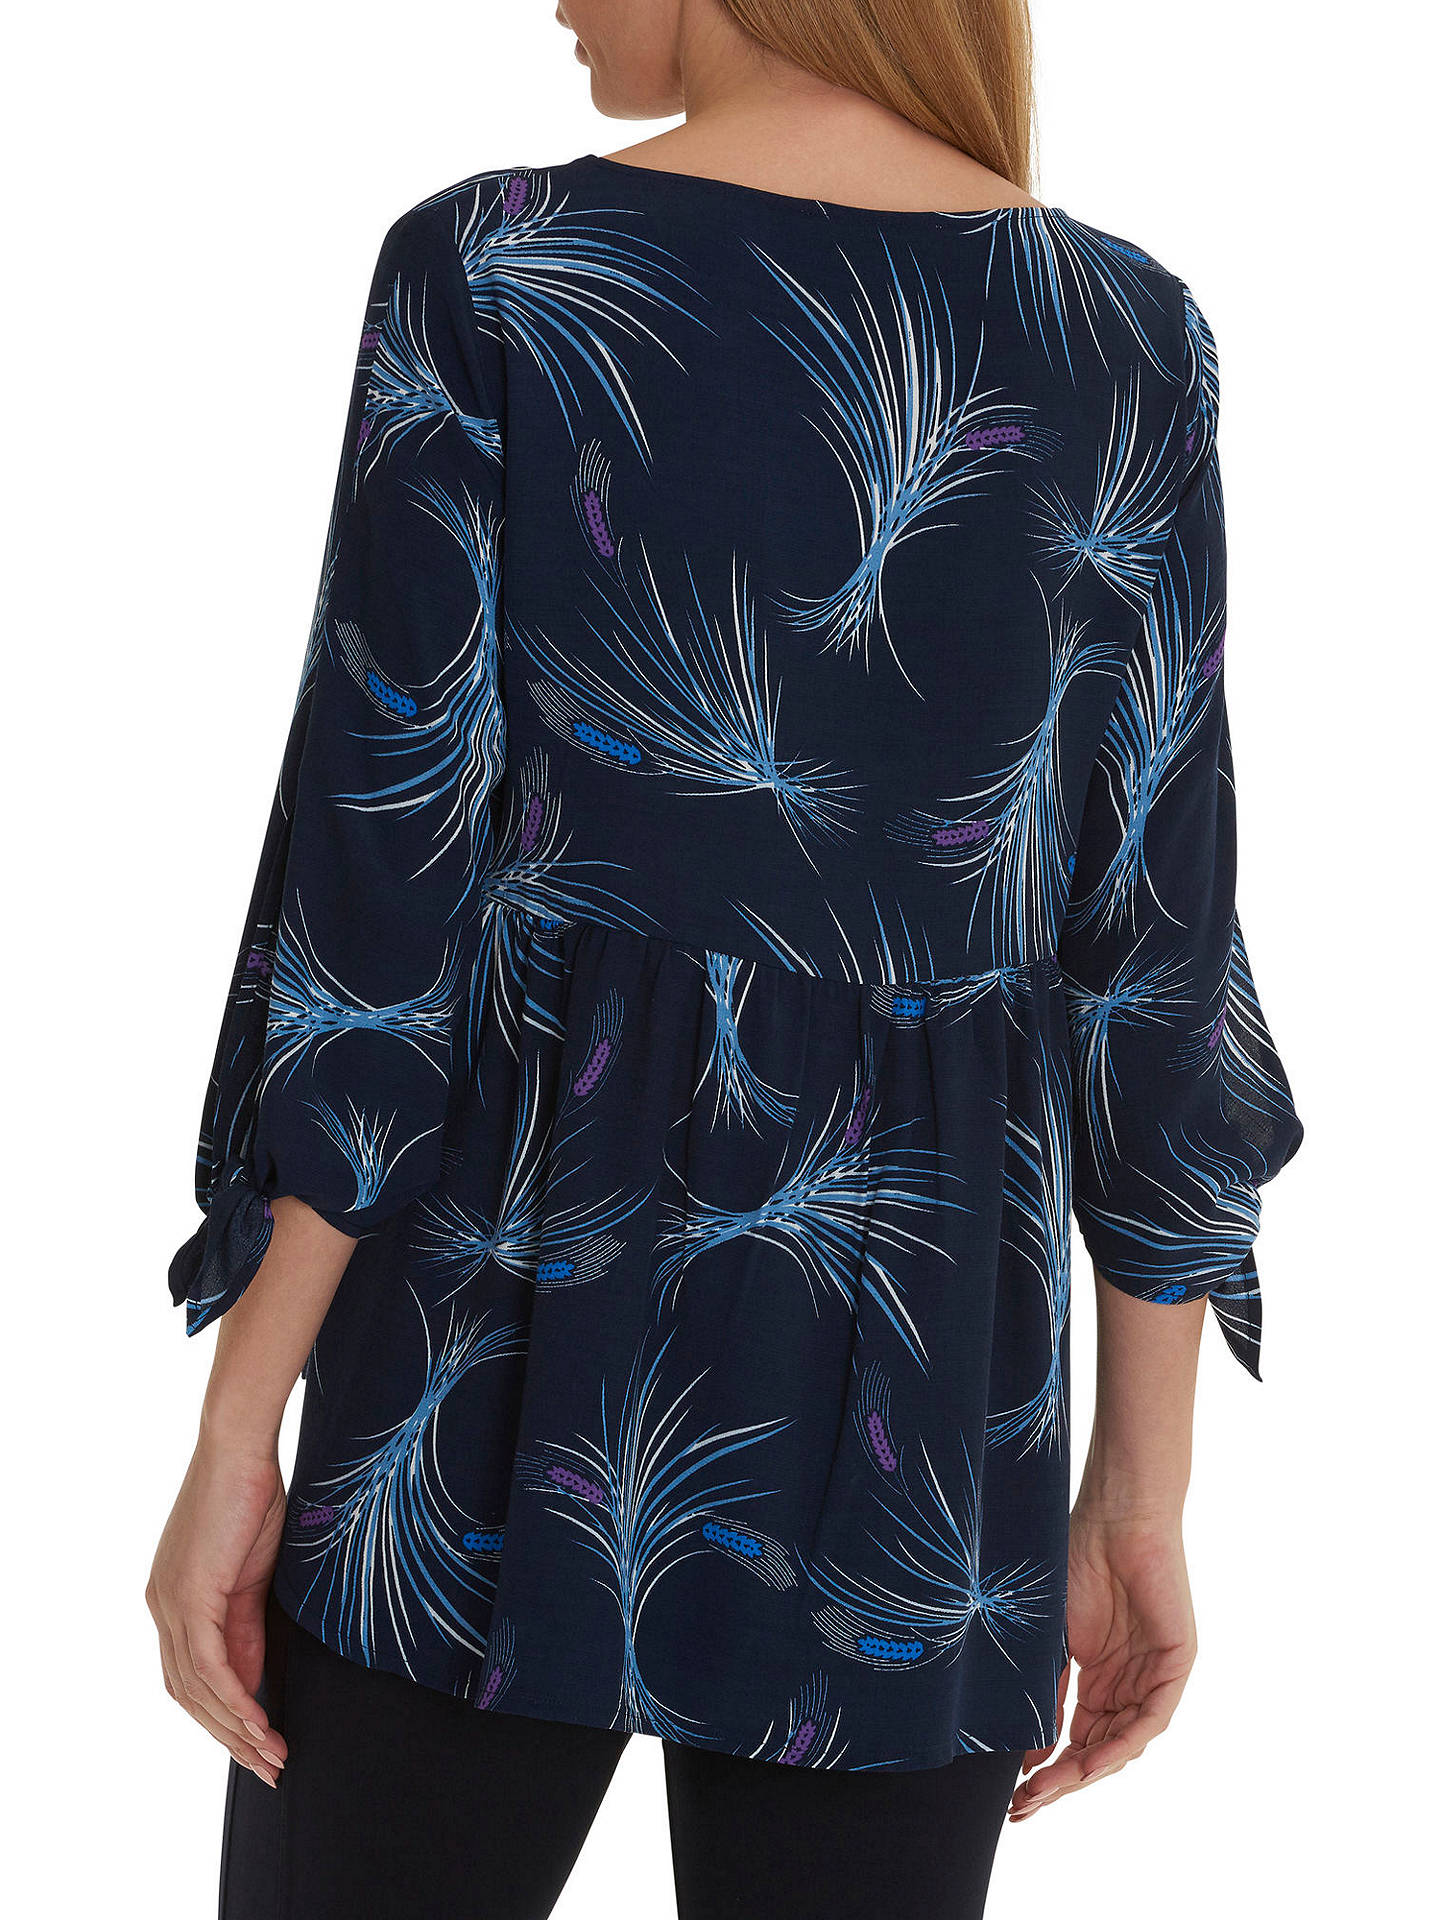 BuyBetty & Co. Corn Print Crepe Blouse, Blue, 10 Online at johnlewis.com